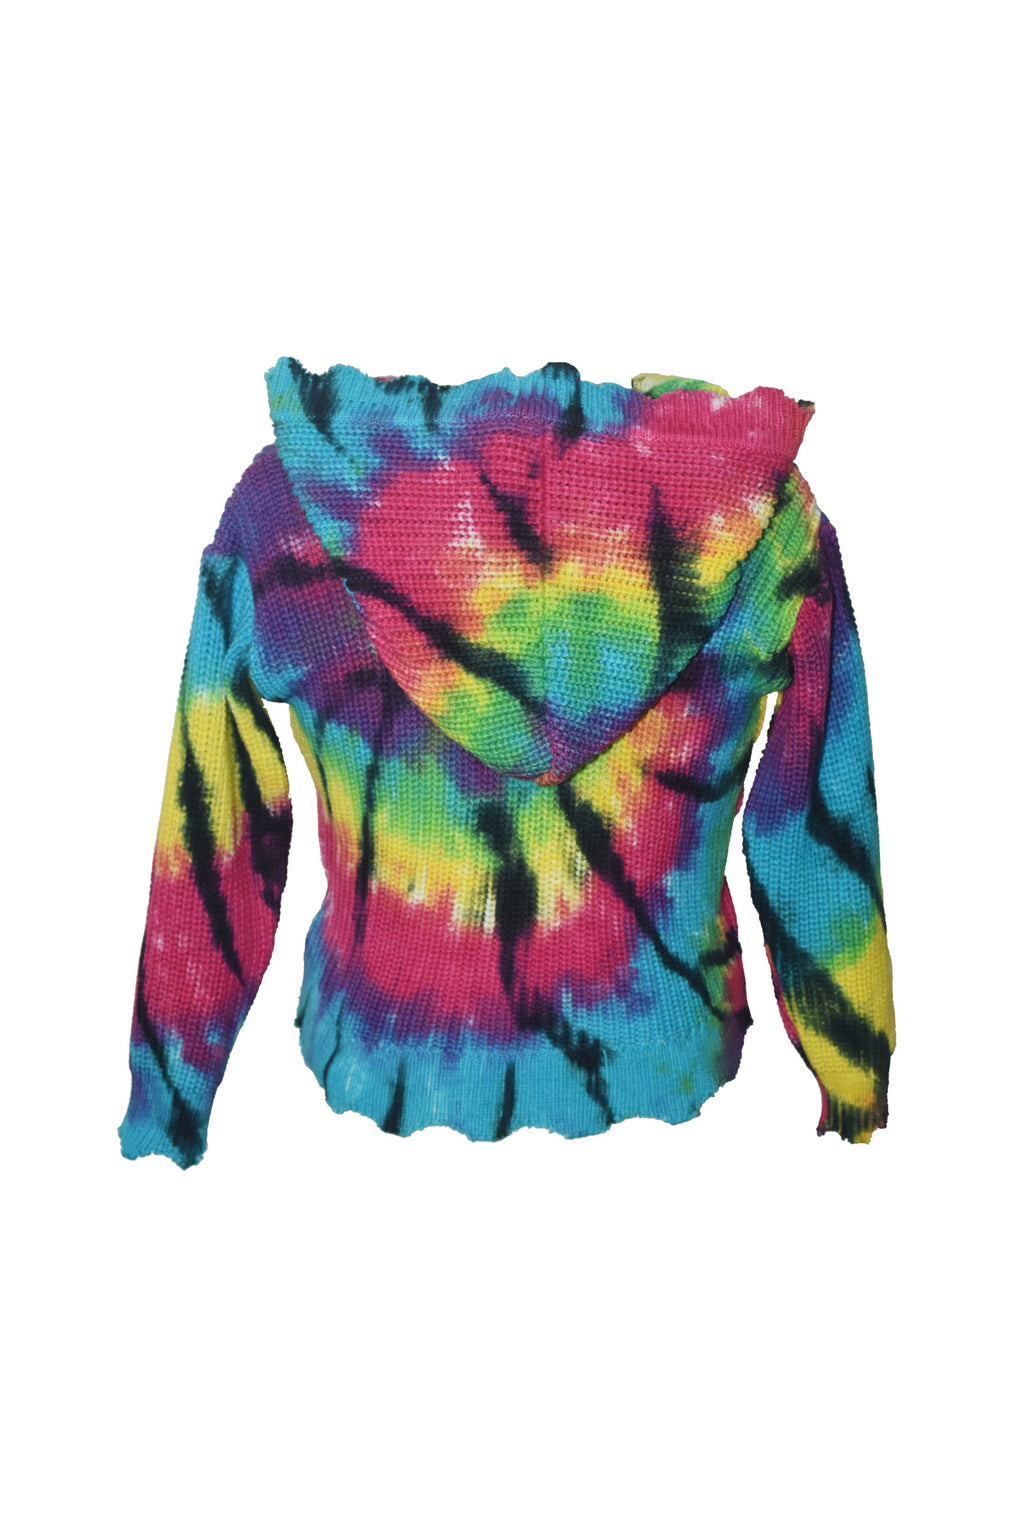 *Bright Spider Tiedye Zip Cardigan*